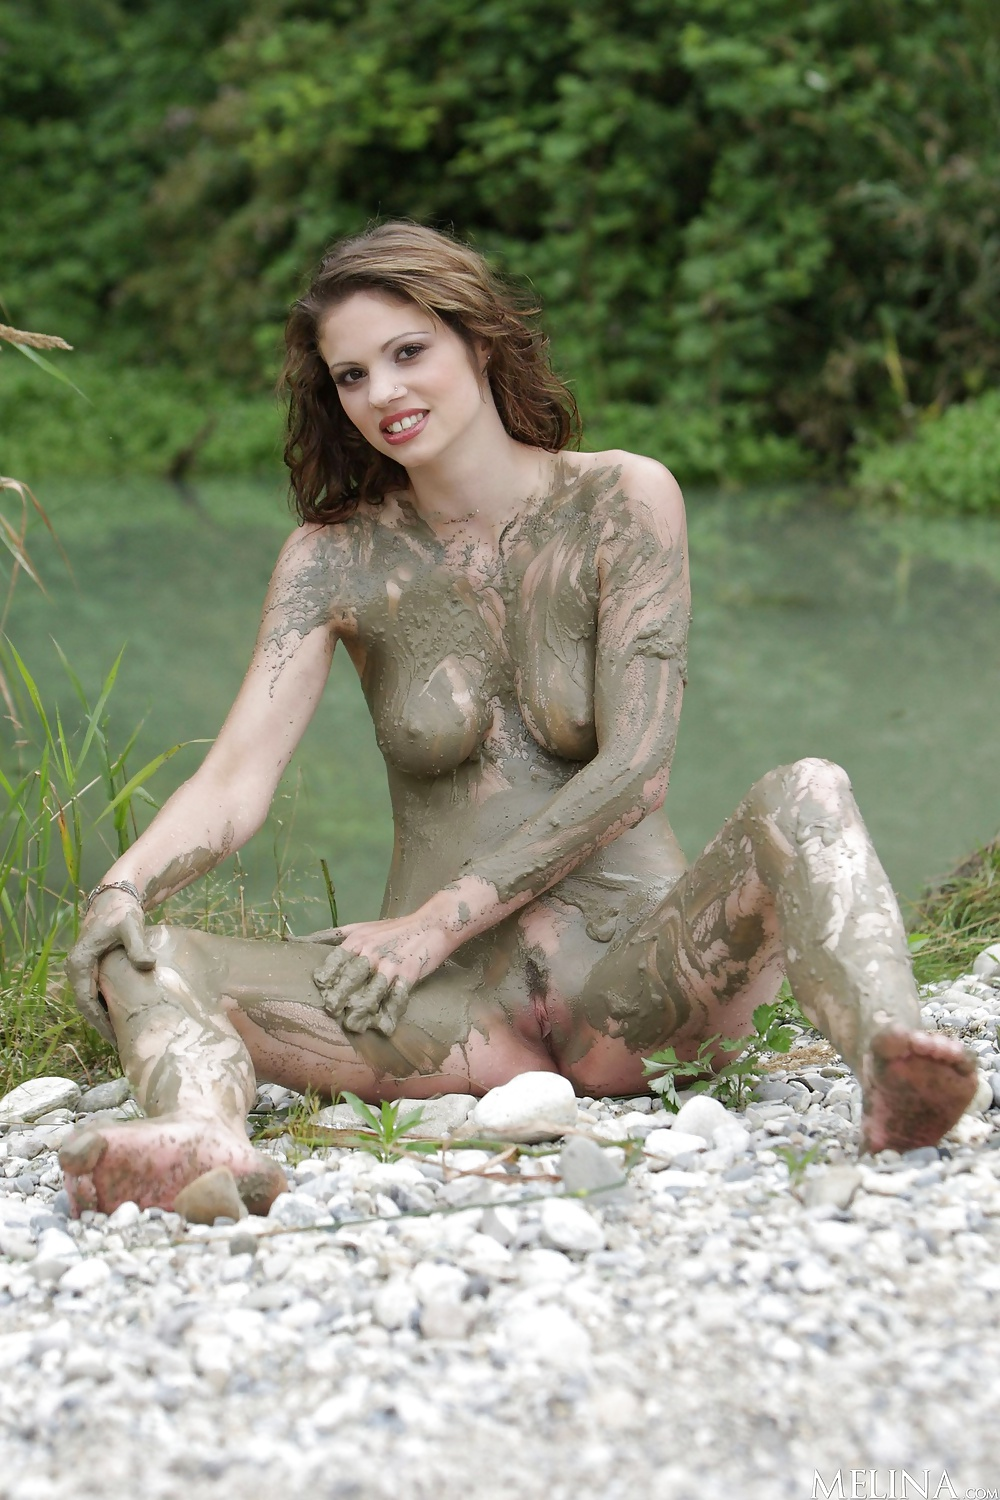 Nude girls in the mud